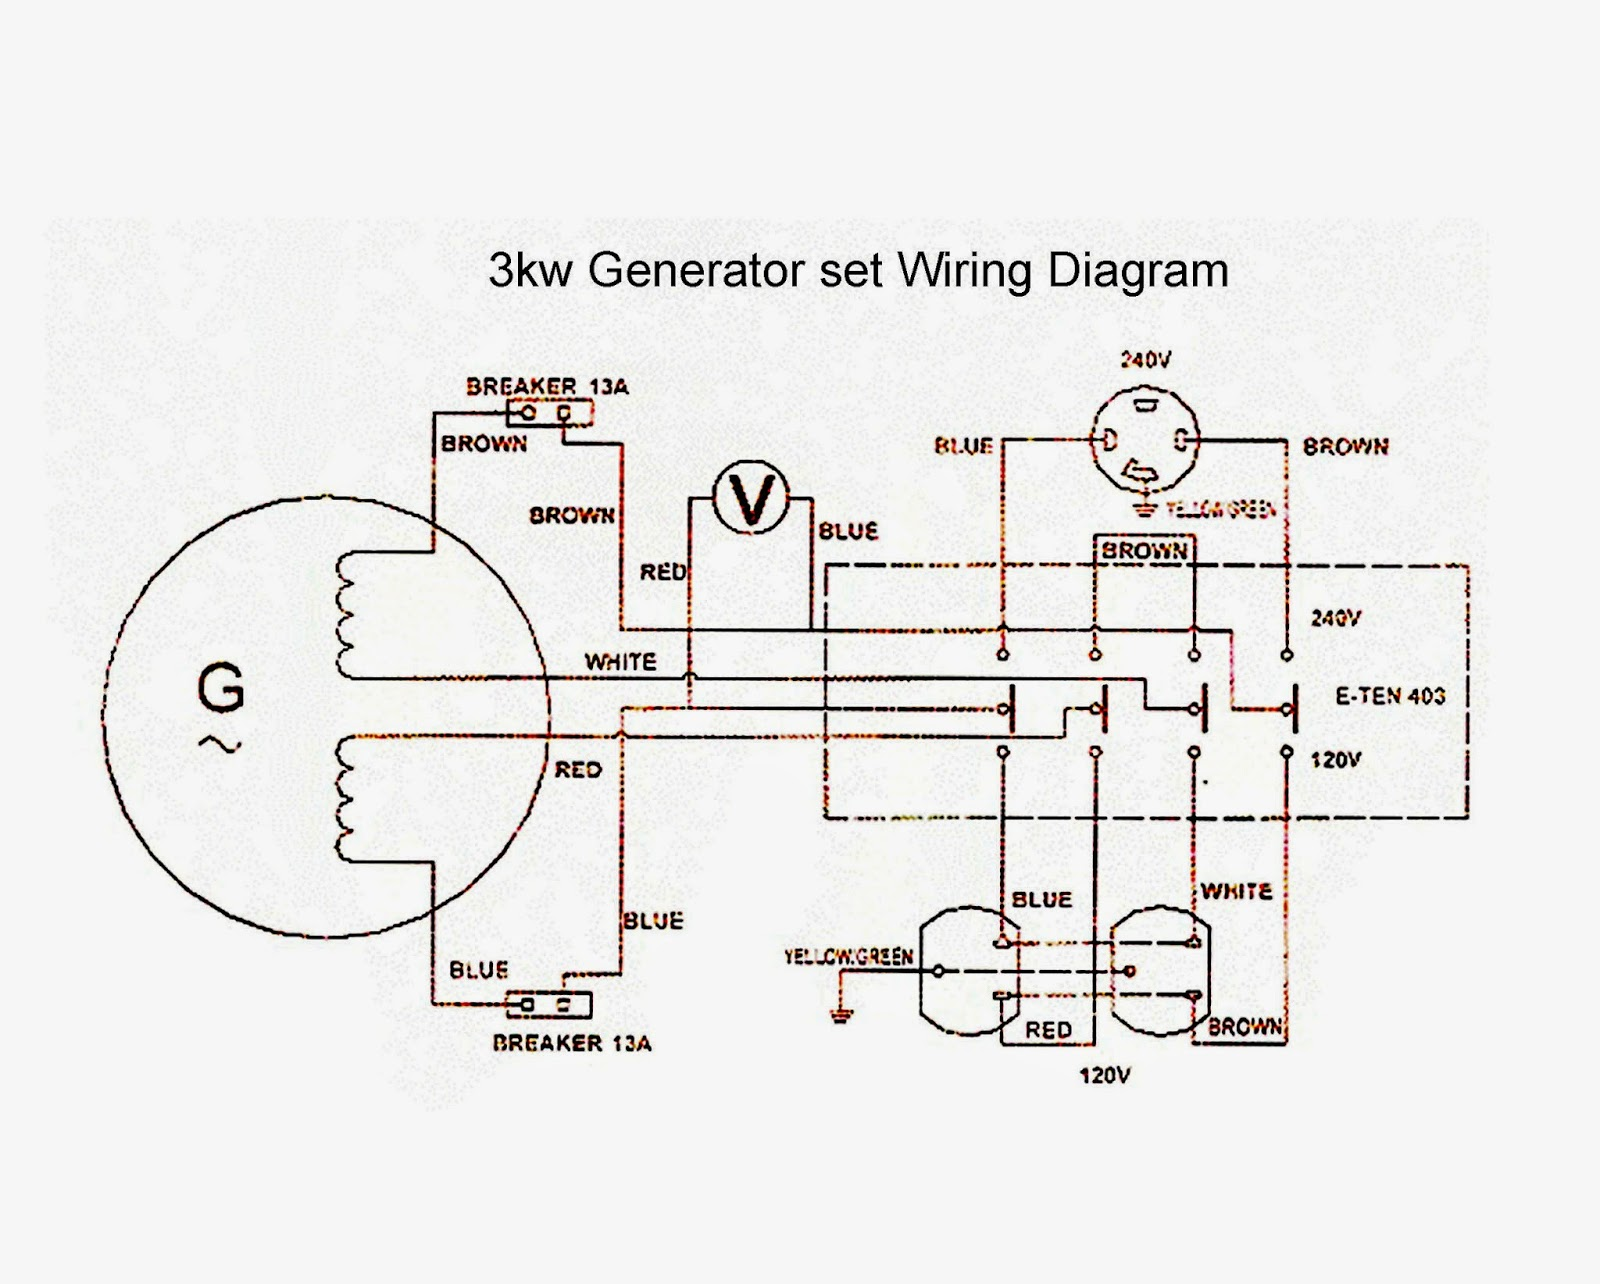 ☑ 12 Wire Generator Wiring Diagram HD Quality ☑ round-diagrams .twirlinglucca.itTwirlinglucca.it